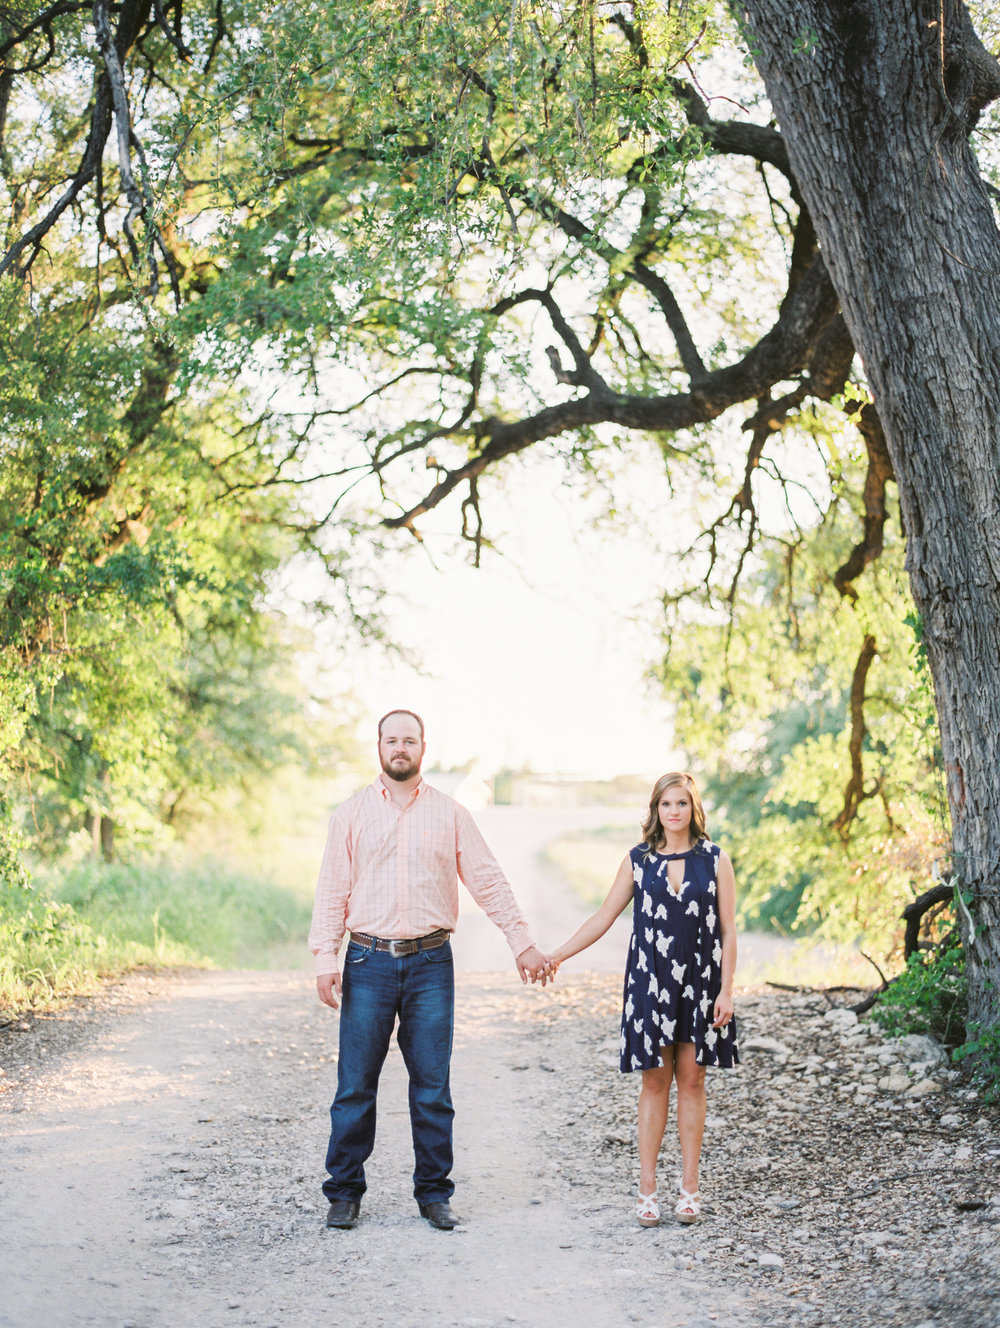 Britni Dean Photography | Texas Wedding & Portrait Photographer | Film Wedding Photographer | 2016 Wrap-Up!